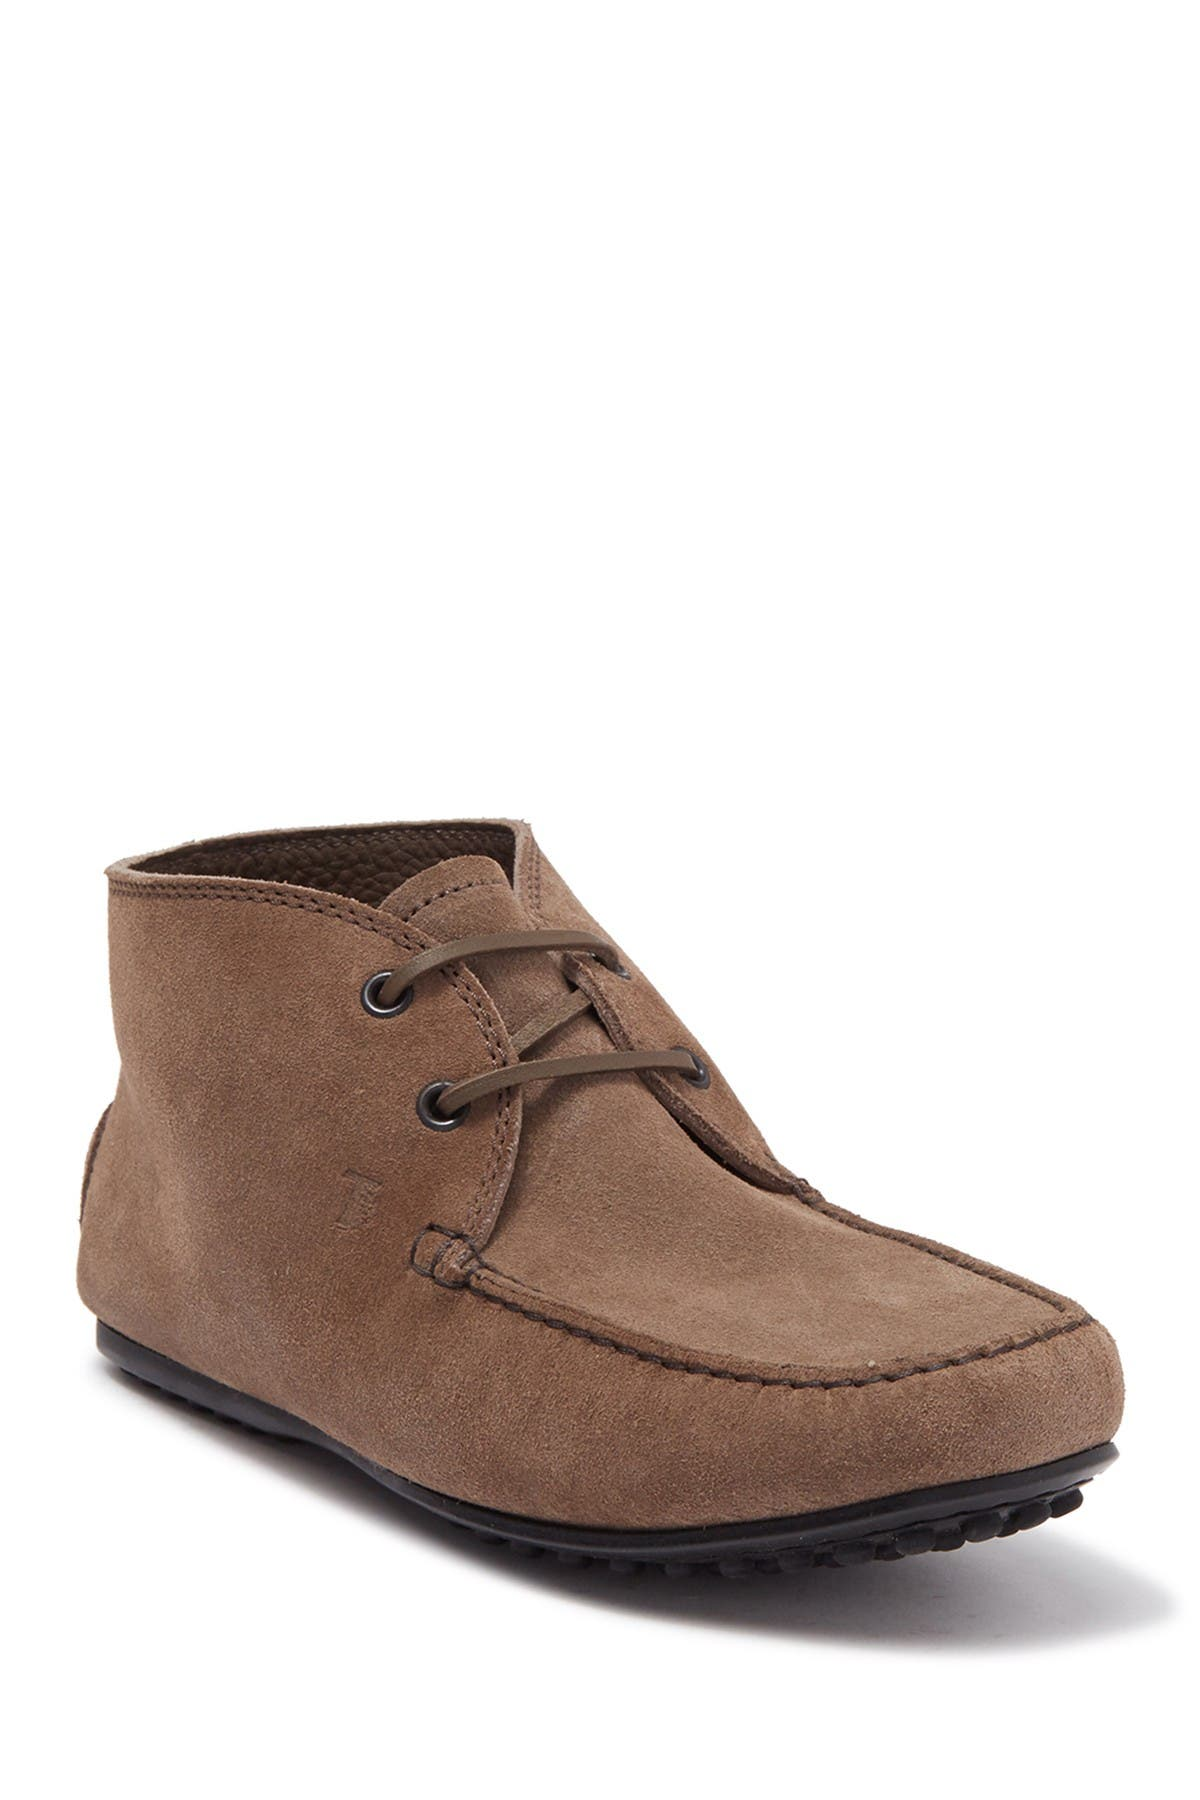 Image of Tod's Polacco City Suede Chukka Driver